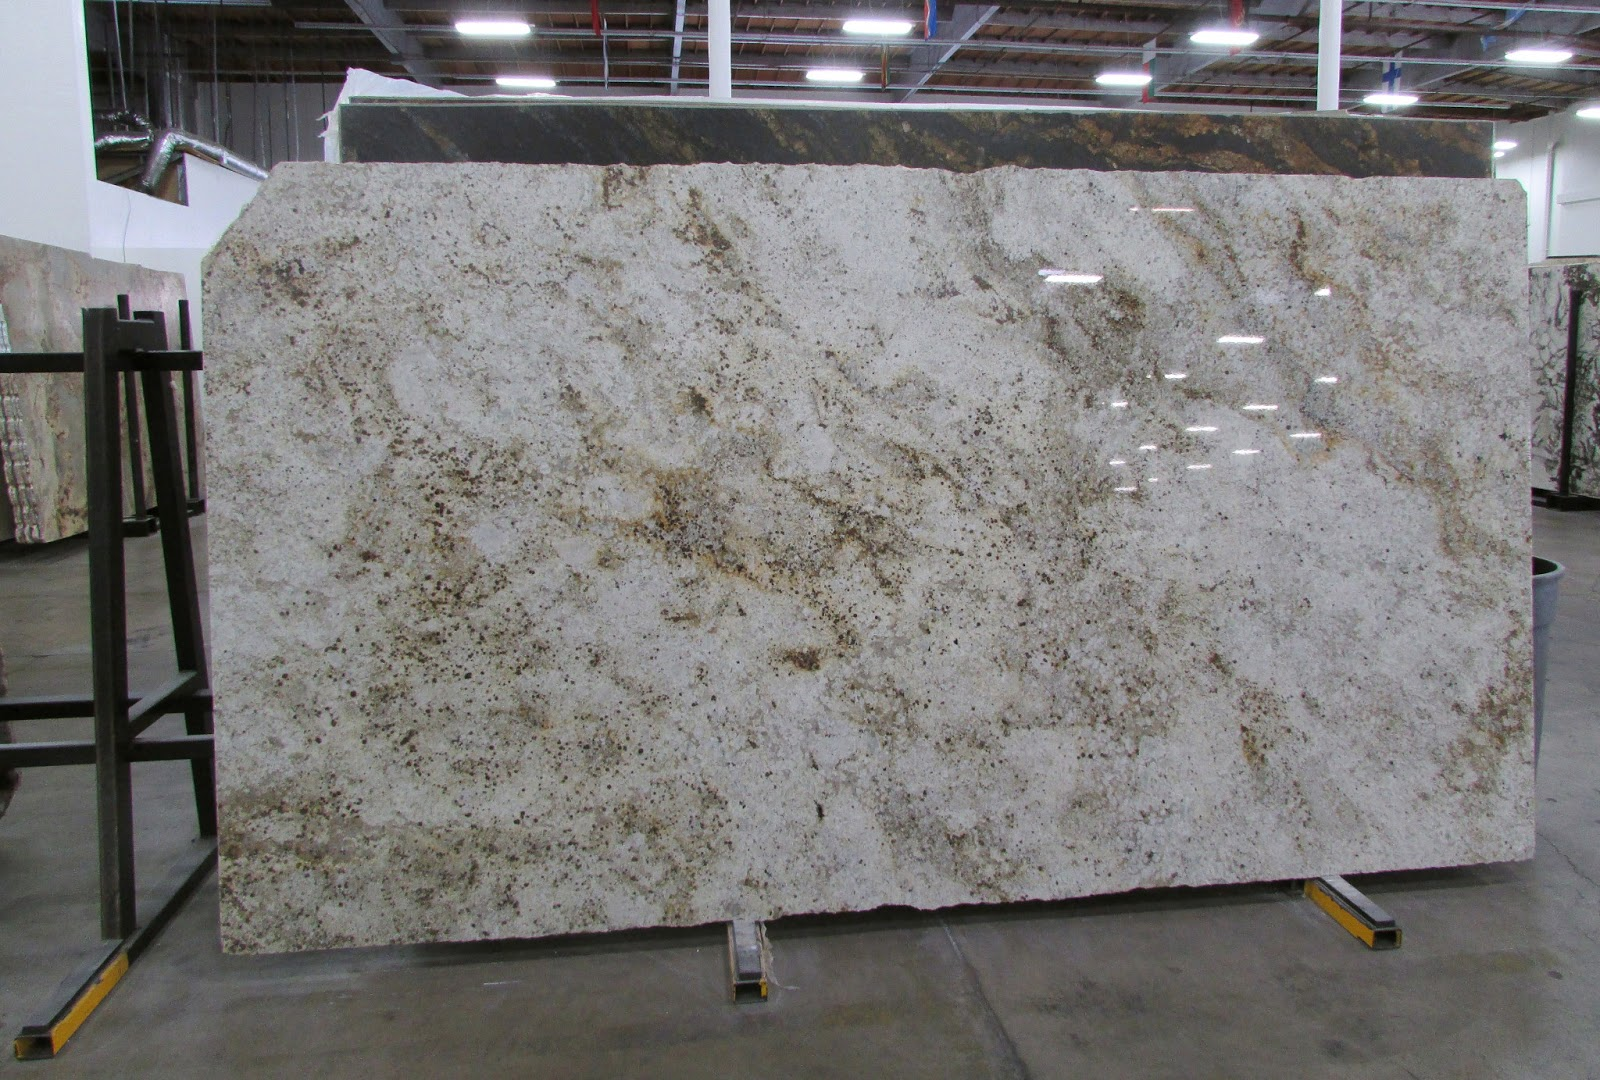 Granite Slabs Arizona Tile : Thyme in a bottle new windows granite slab kitchen update